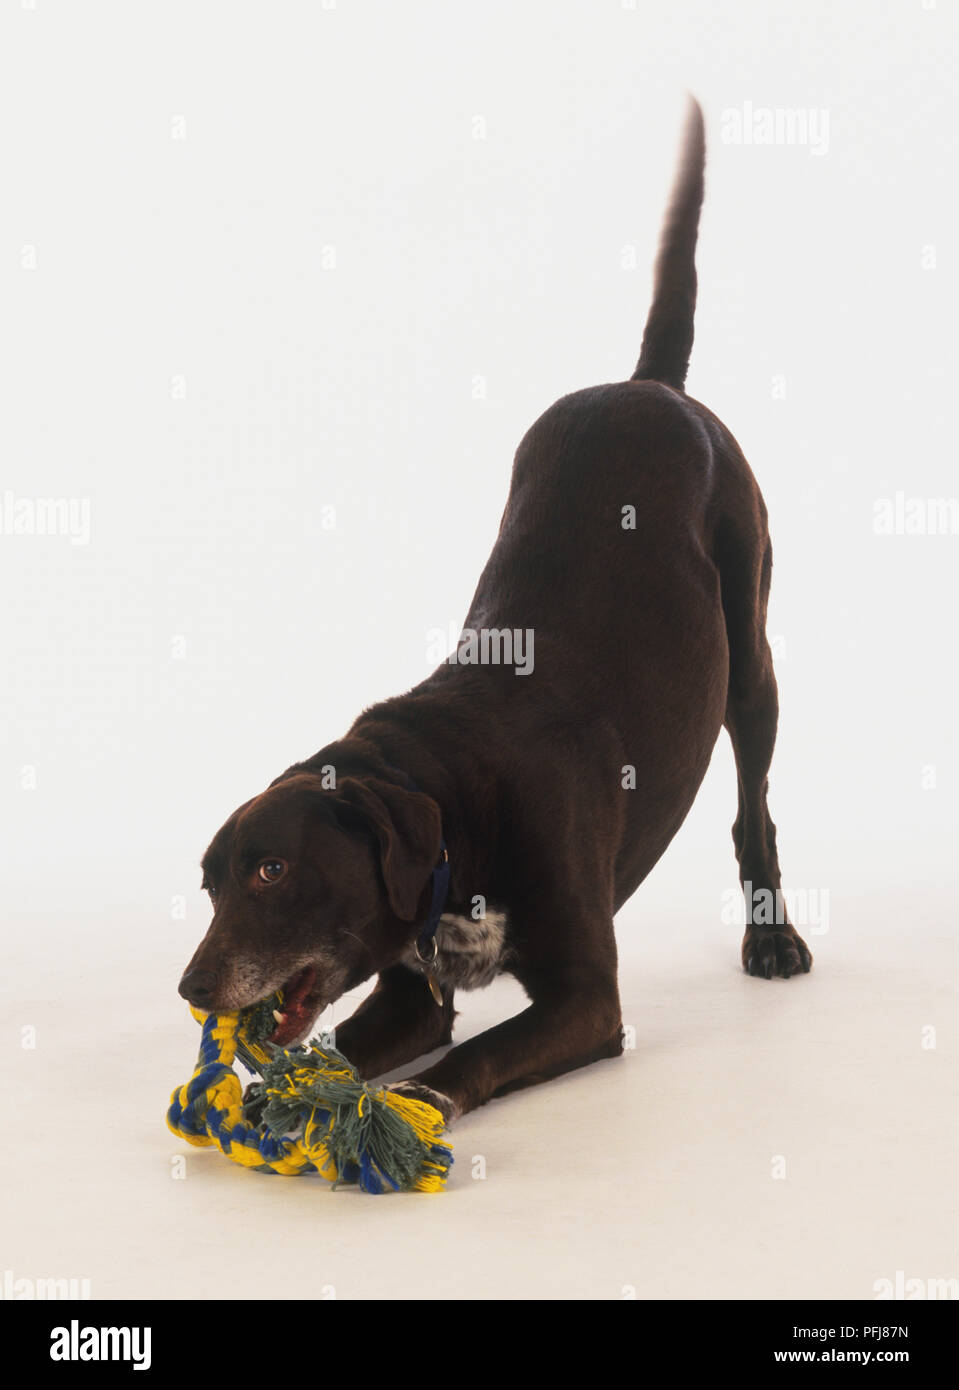 Brown dog crouched on front legs with its hindquarters and tail sticking up - Stock Image